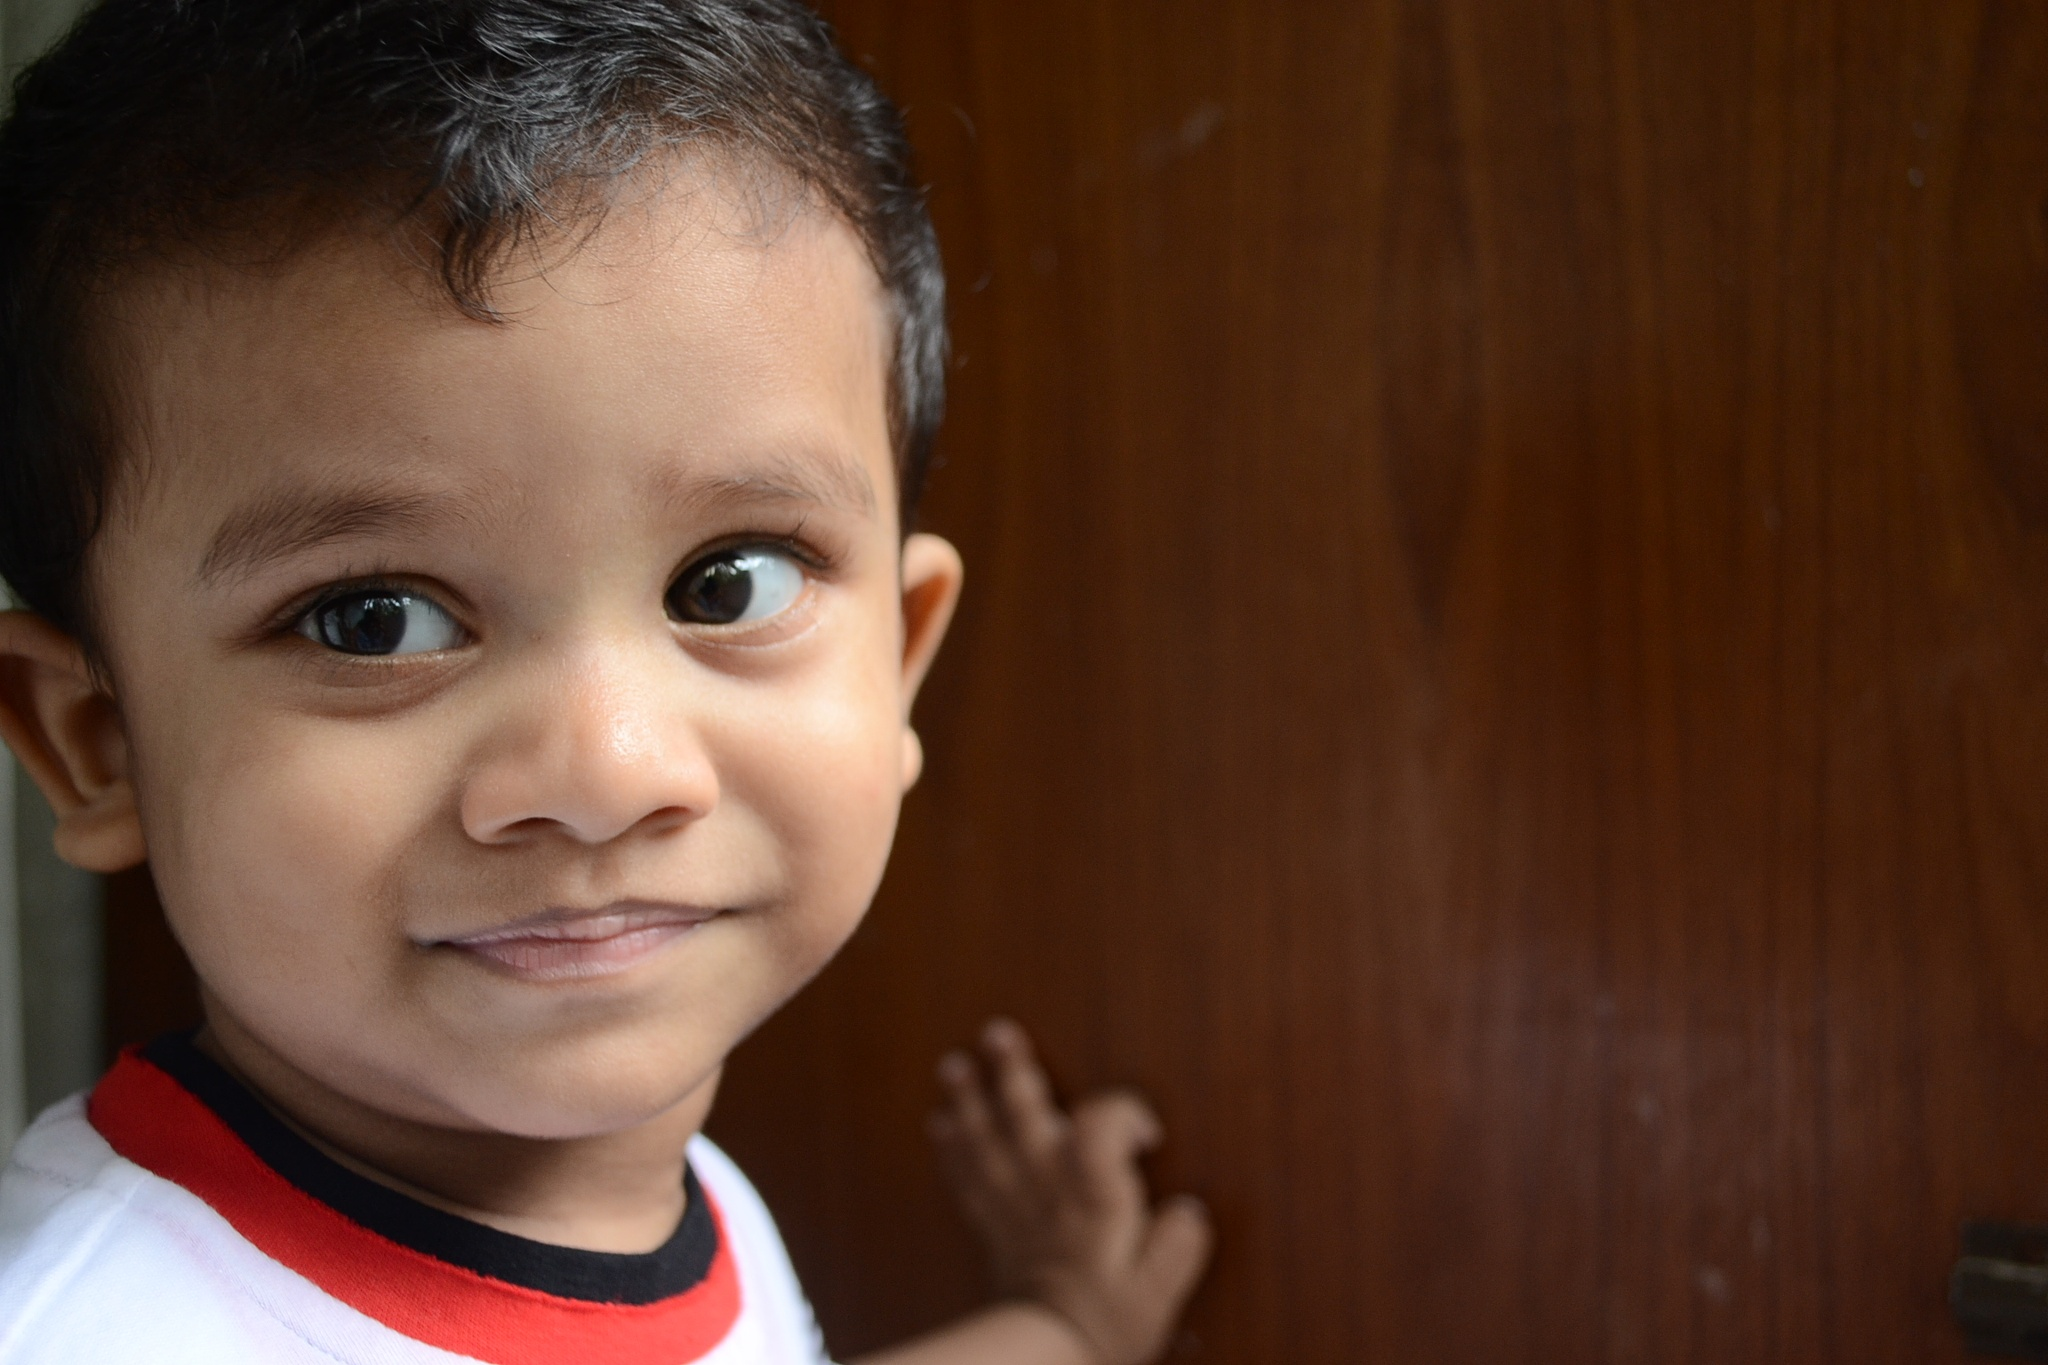 Smile by Md Golam Murshed